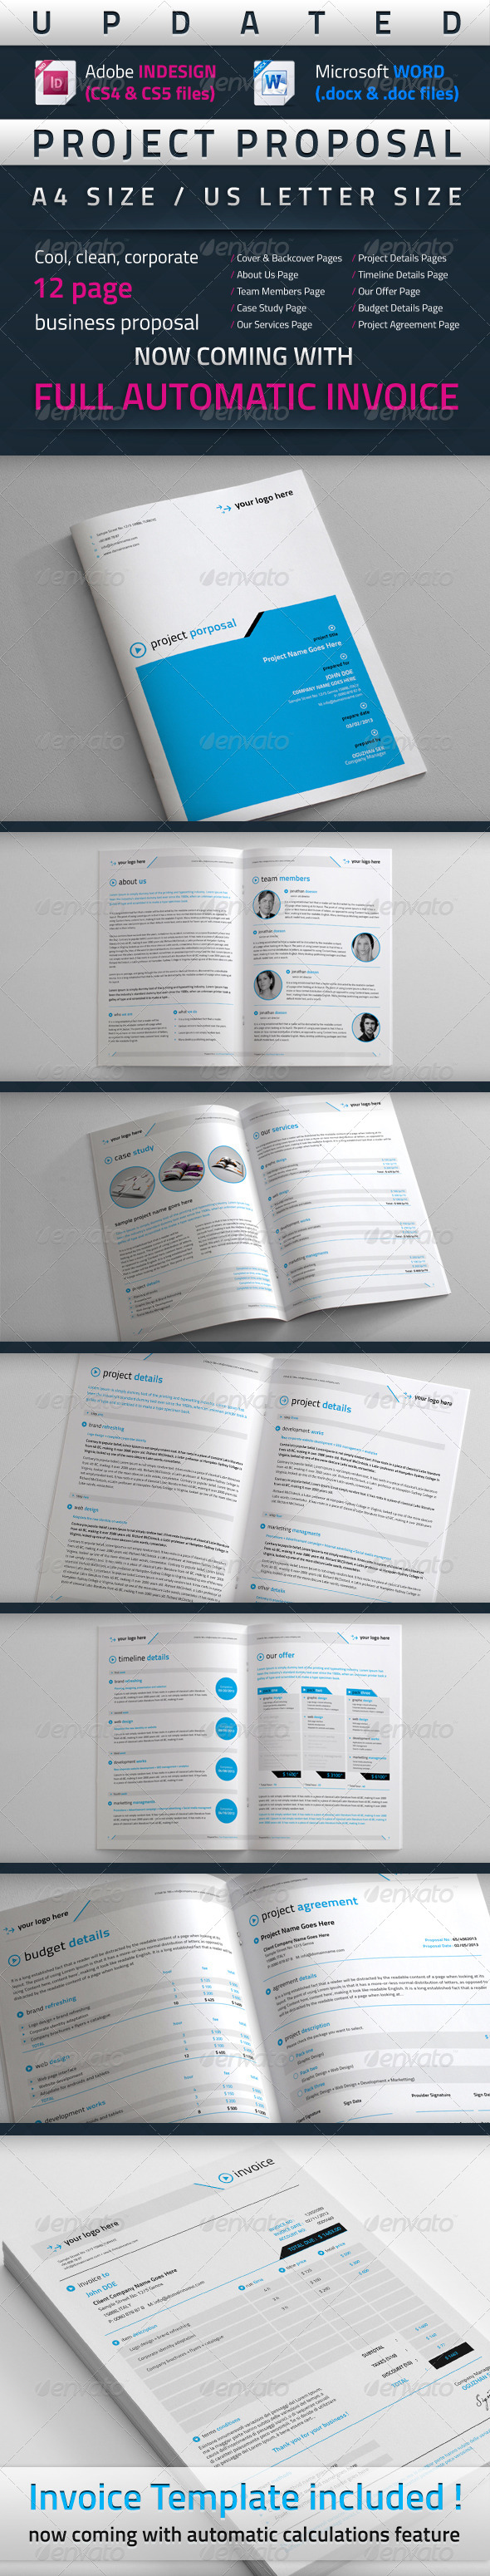 Project Proposal Template (Updated) - Proposals & Invoices Stationery